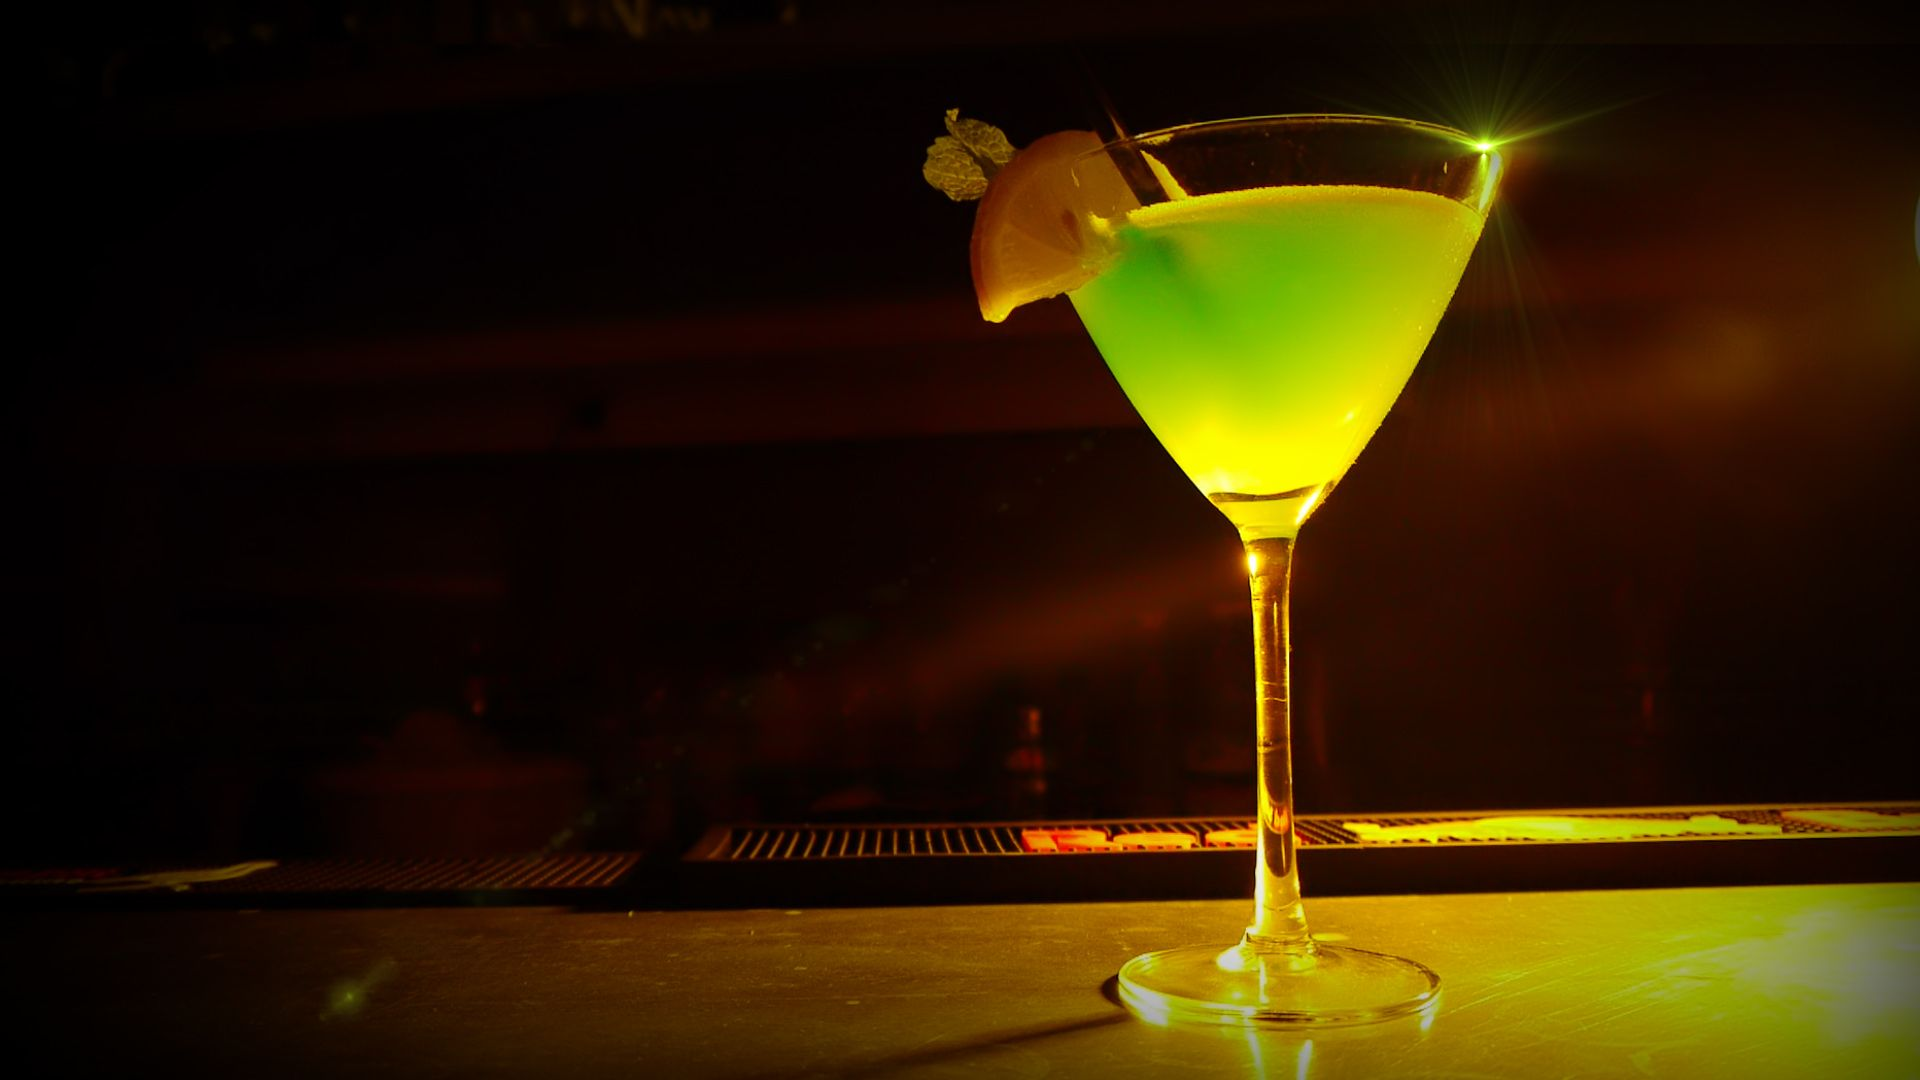 Lovely Beliebte Cocktails Decoration Of & Drink Specials   Http://www.nightlifeatxreview